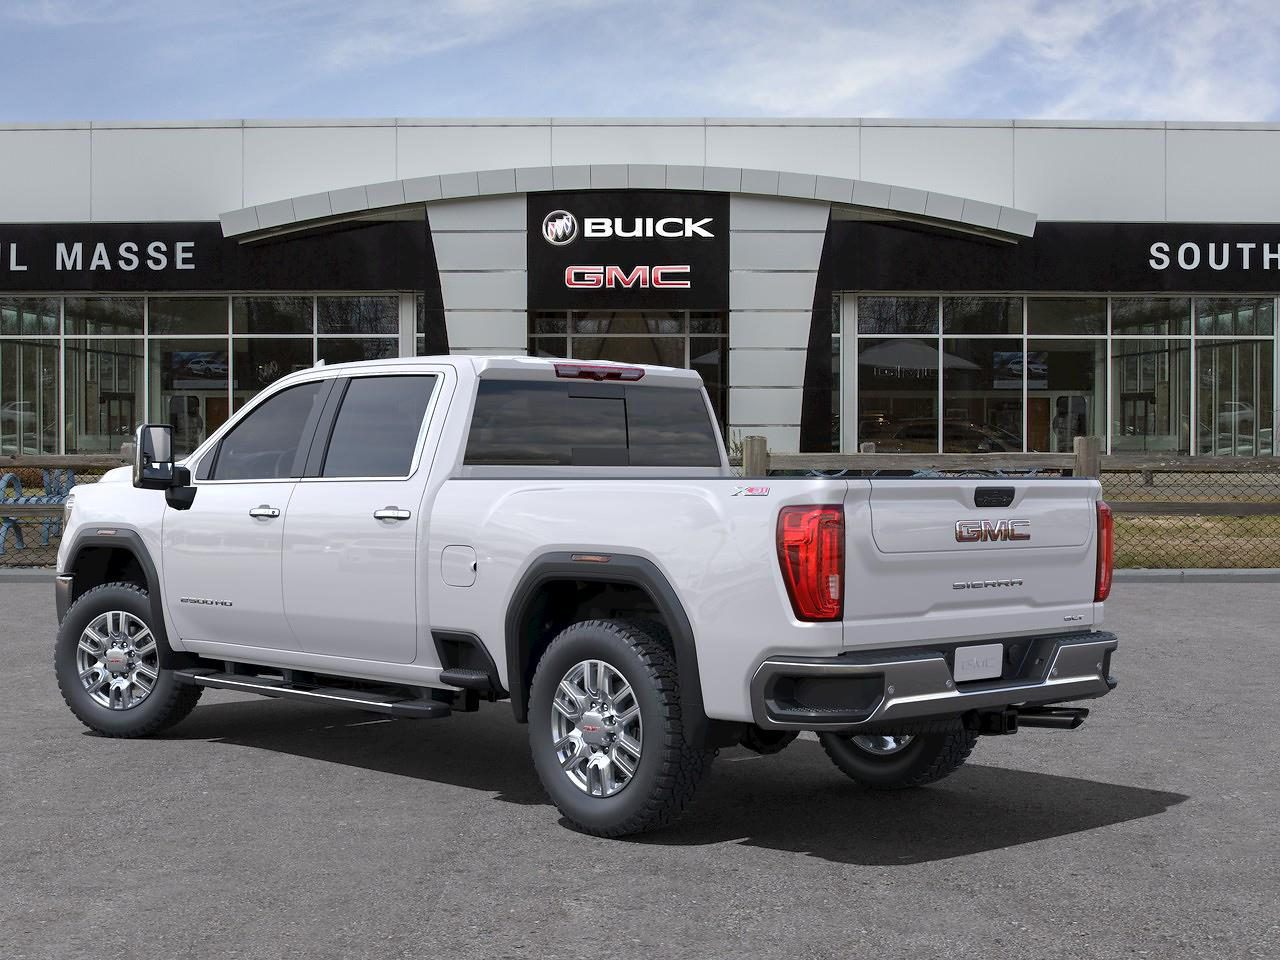 2021 GMC Sierra 2500 Crew Cab 4x4, Pickup #SR1248 - photo 4